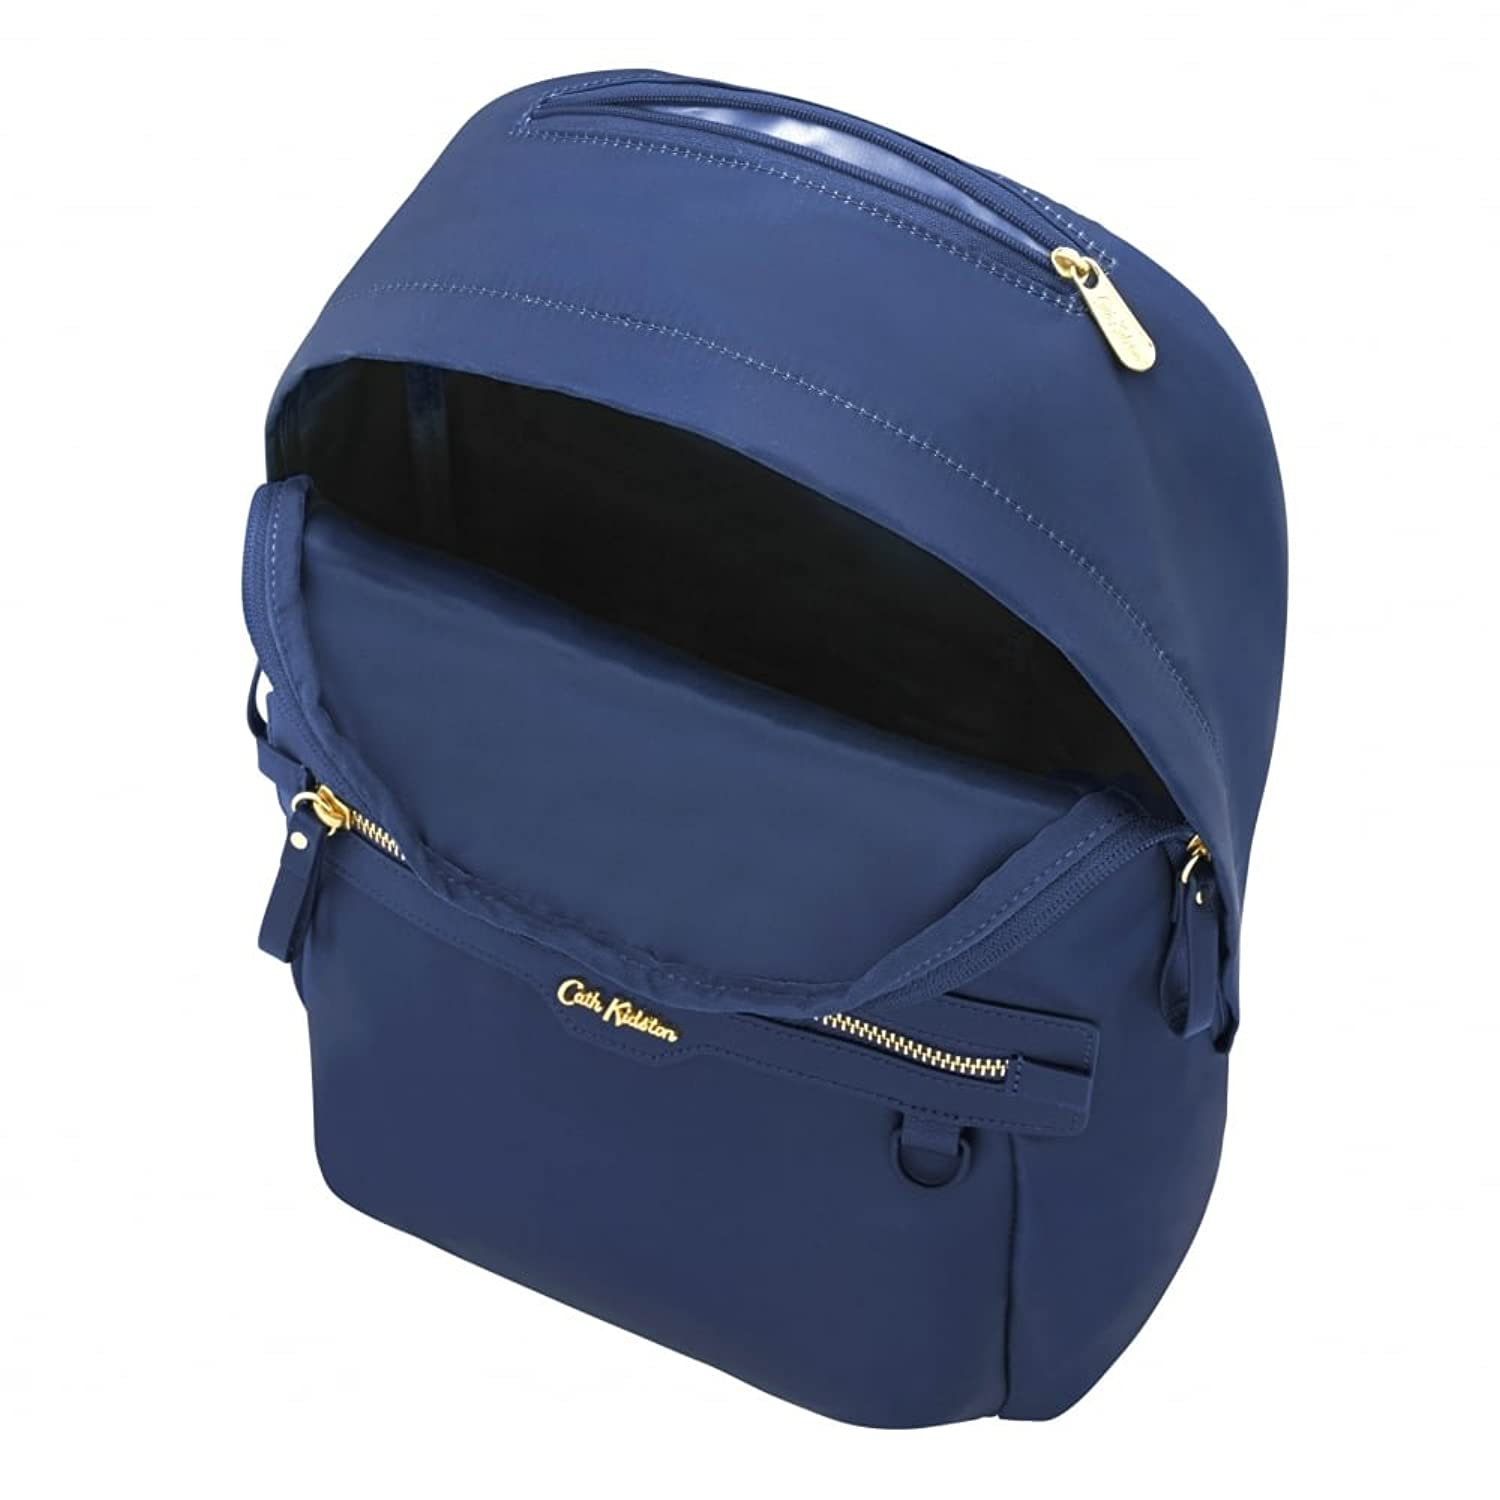 eb1f20406 Aster Backpack Buy Online - CEAGESP